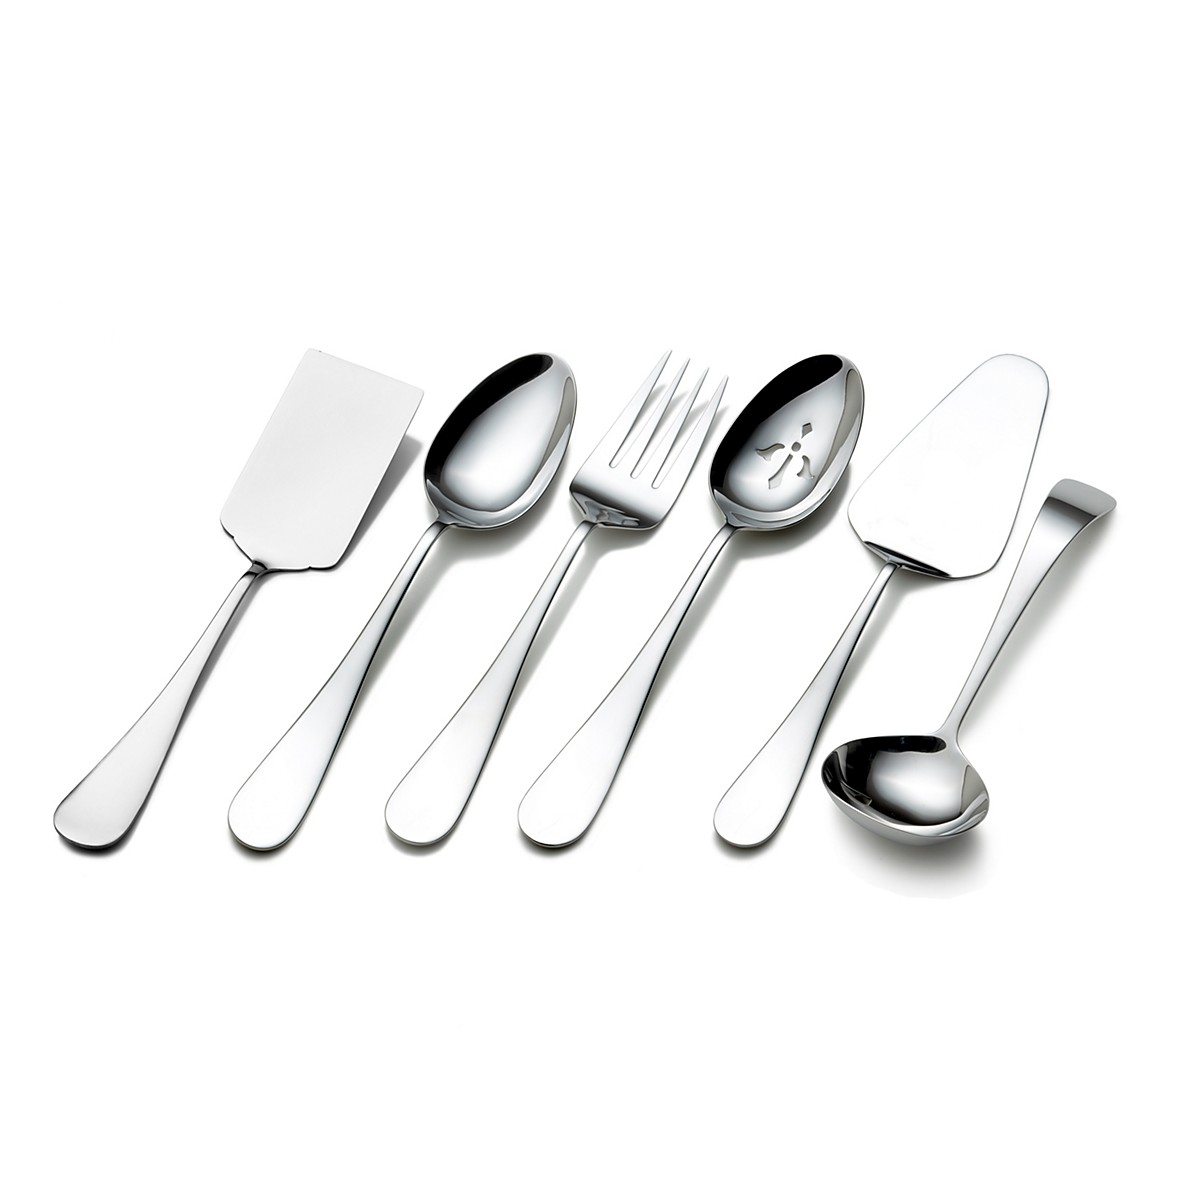 Creative towle flatware 5 piece stainless steel flatware set for serveware ideas